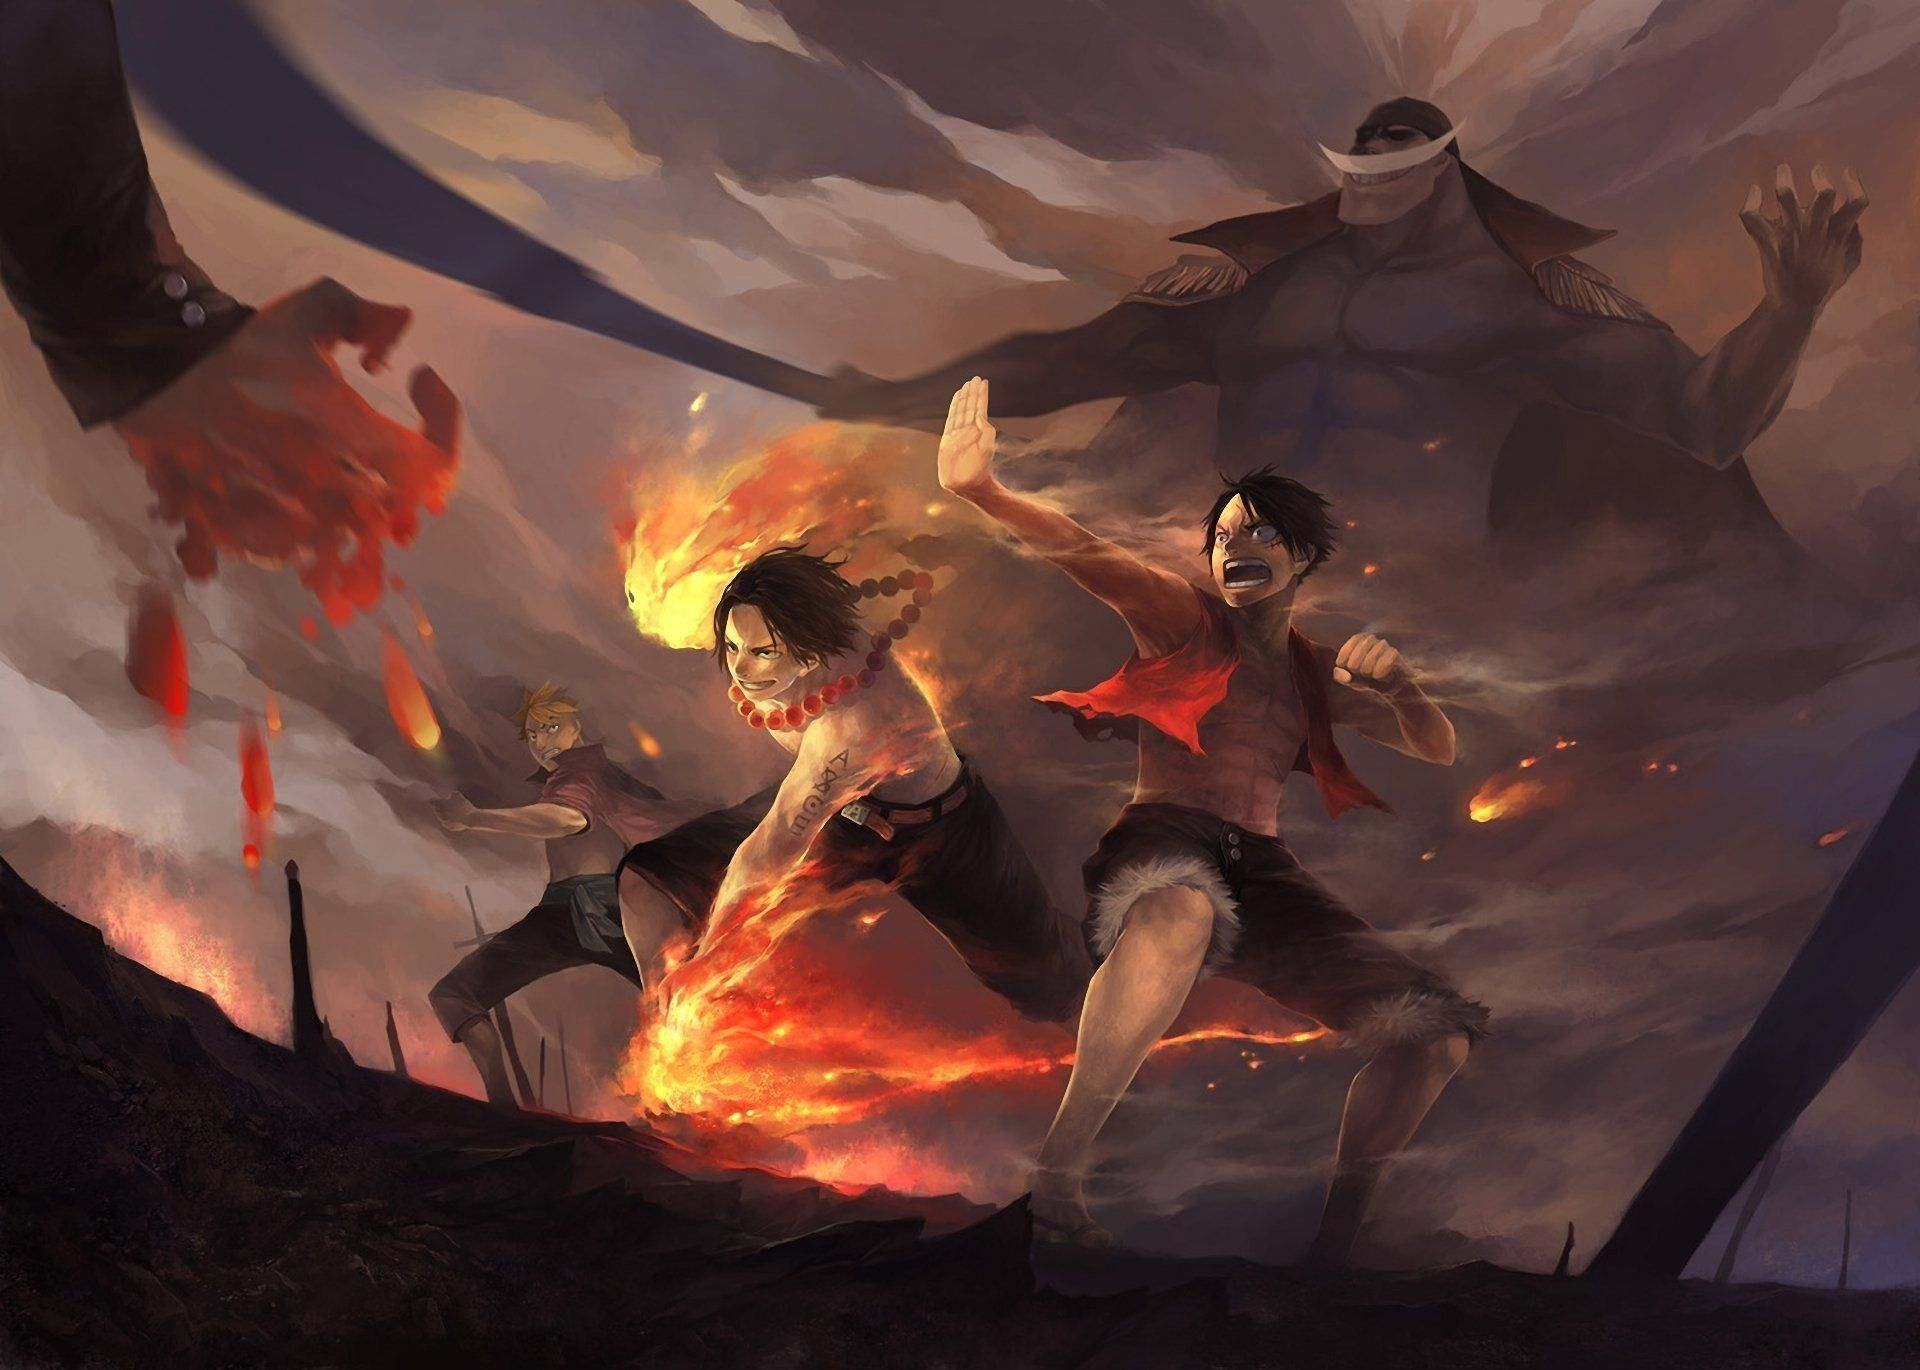 One Piece Epic Wallpapers Top Free One Piece Epic Backgrounds Wallpaperaccess